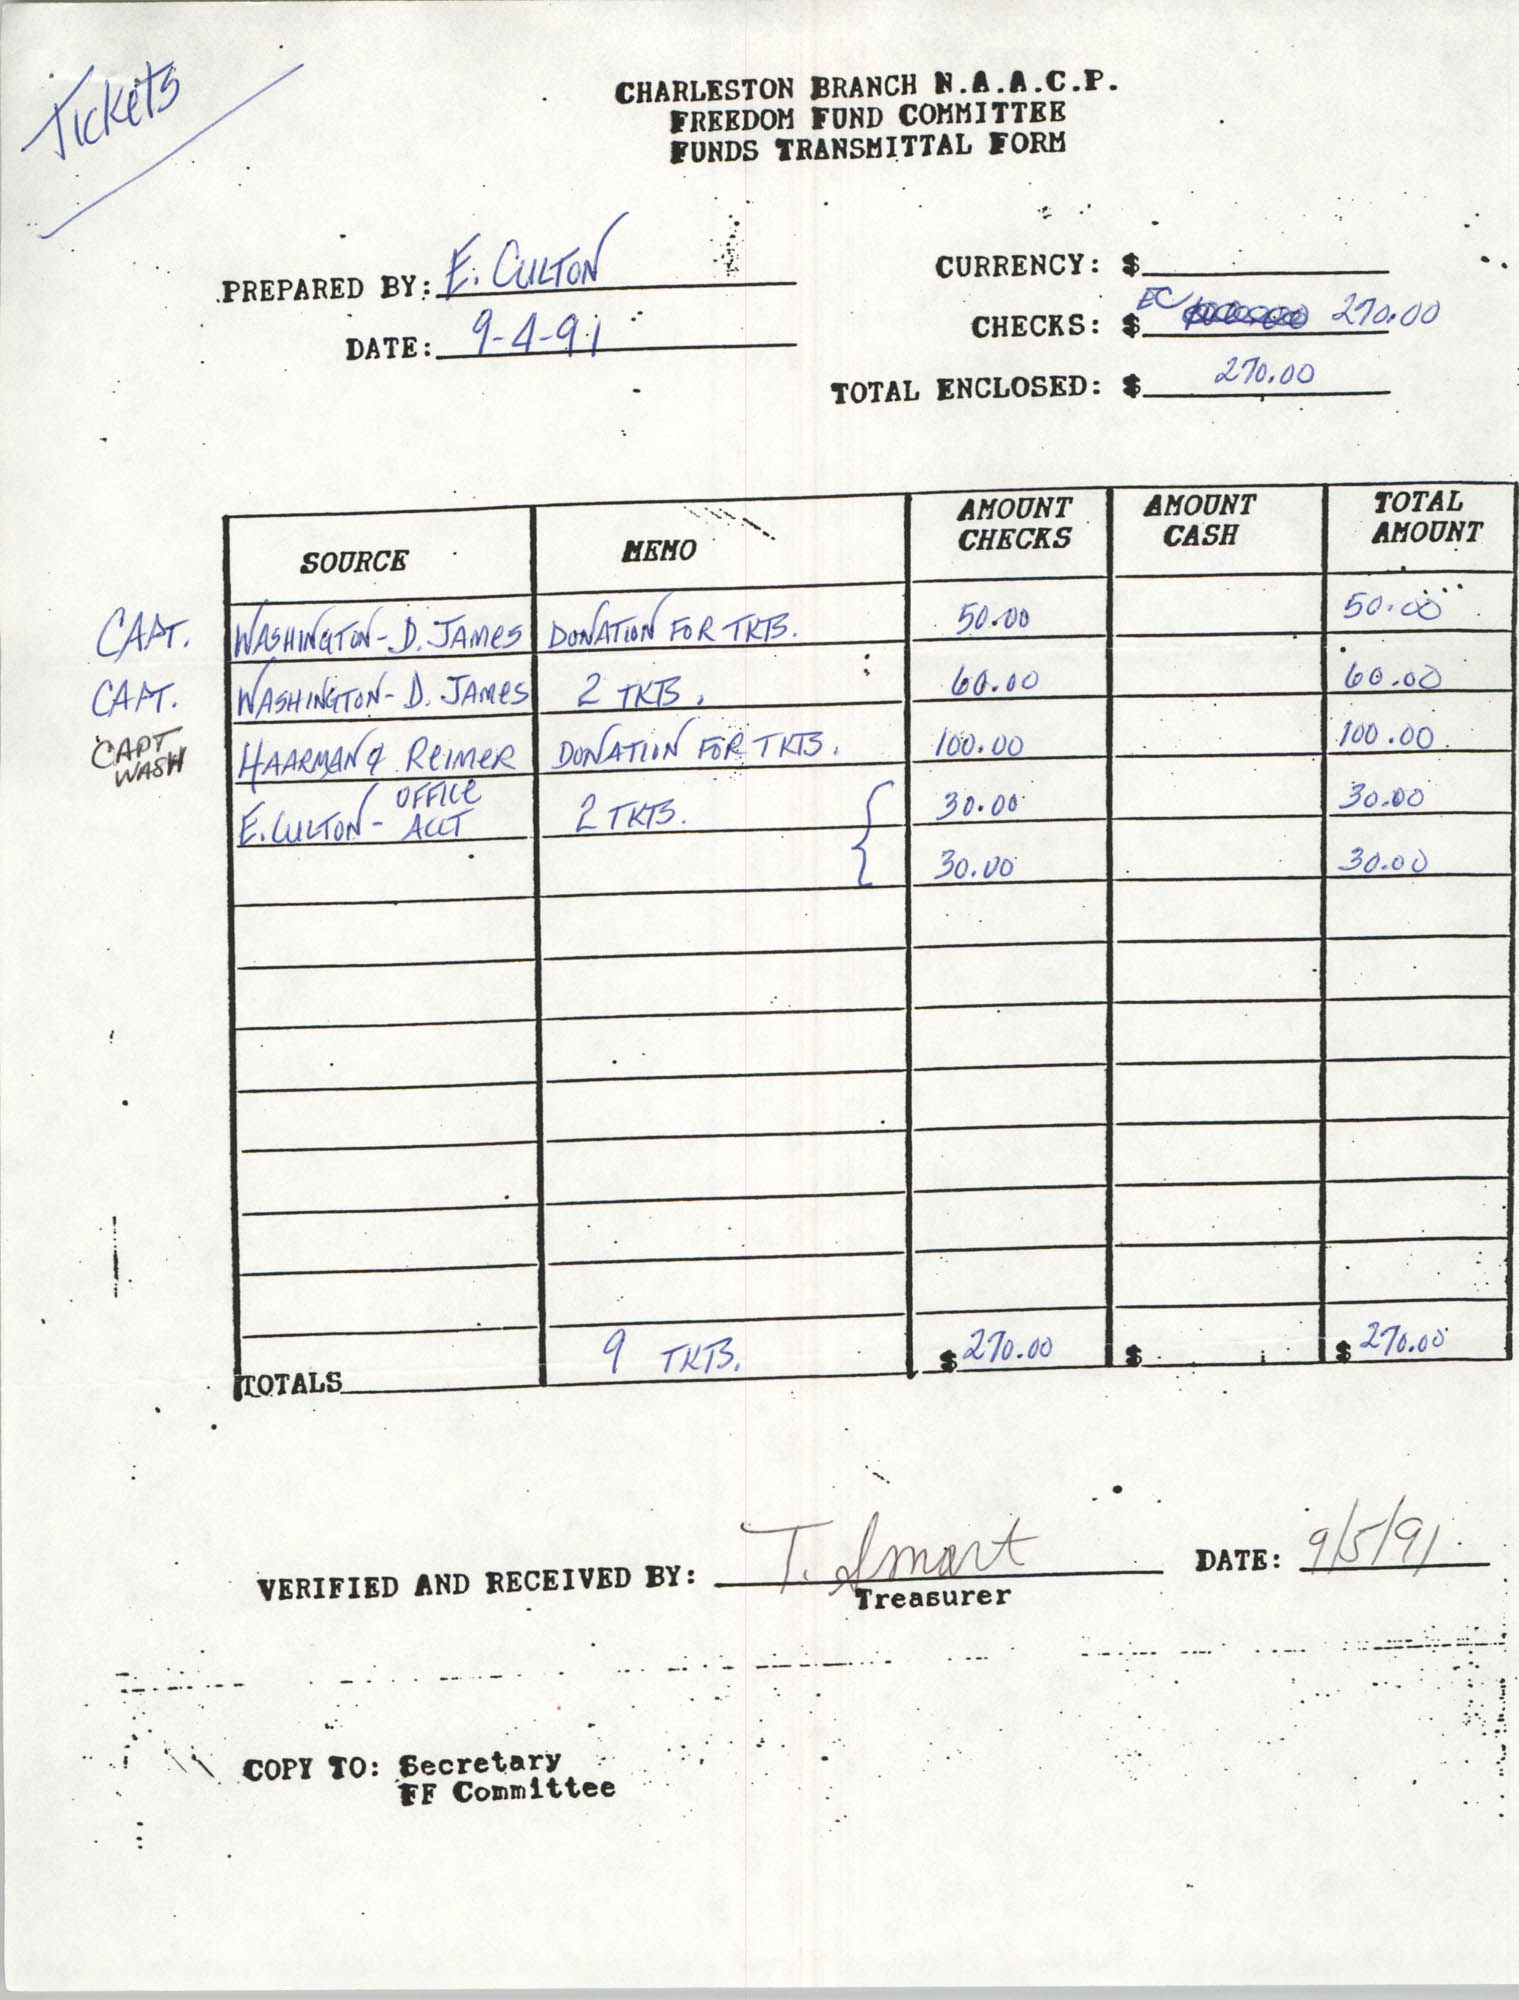 Charleston Branch of the NAACP Funds Transmittal Forms, September 1991, Page 10